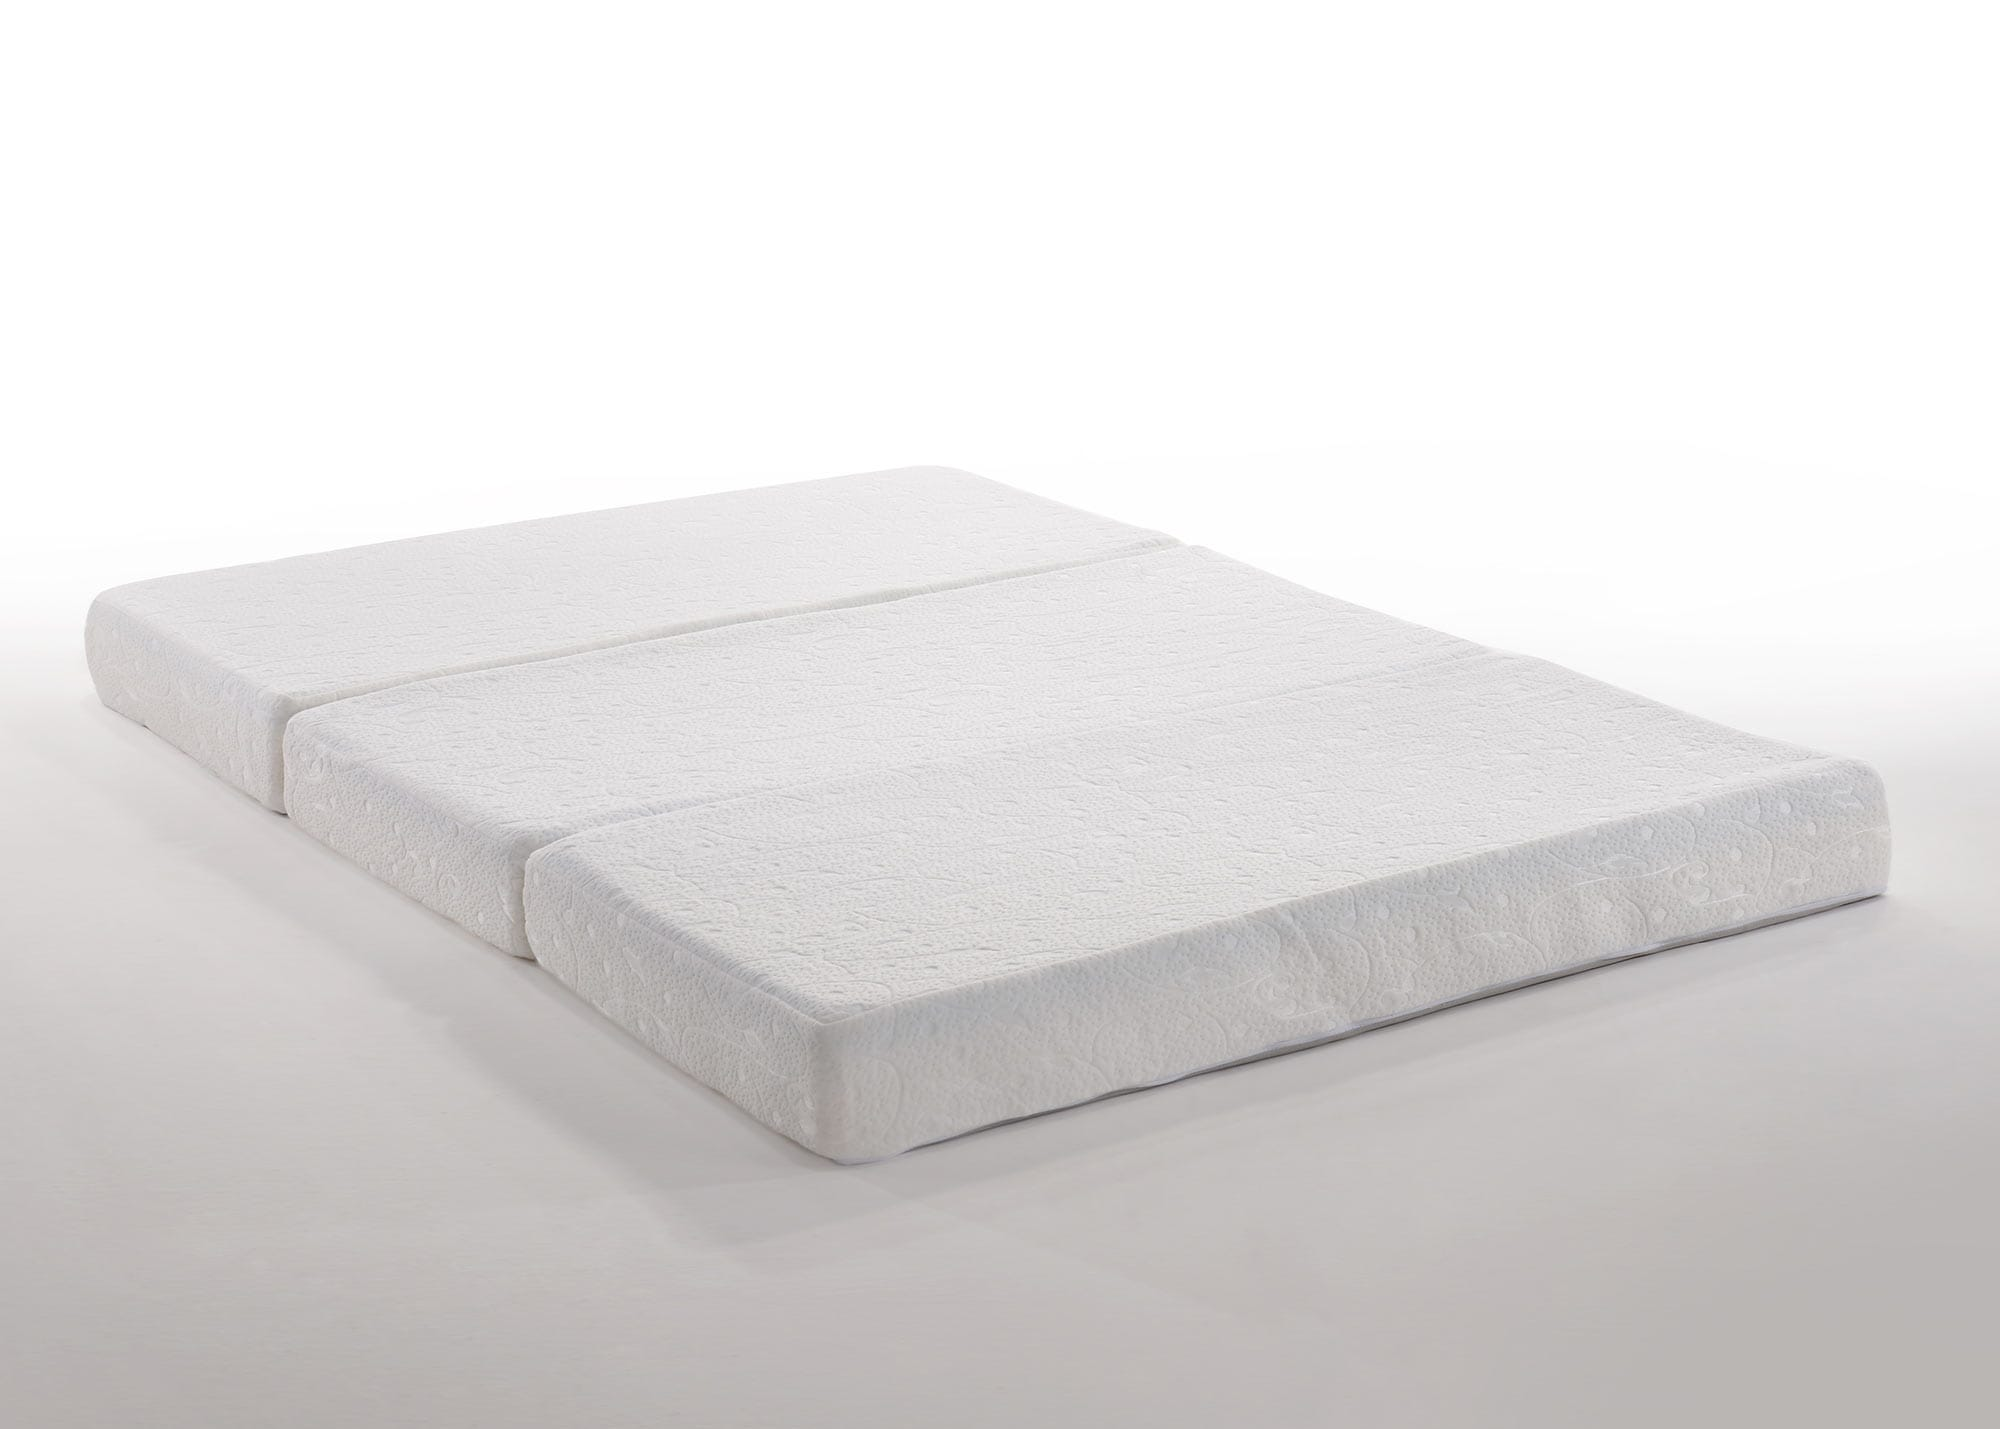 Tri Fold Gel Memory Foam Mattress